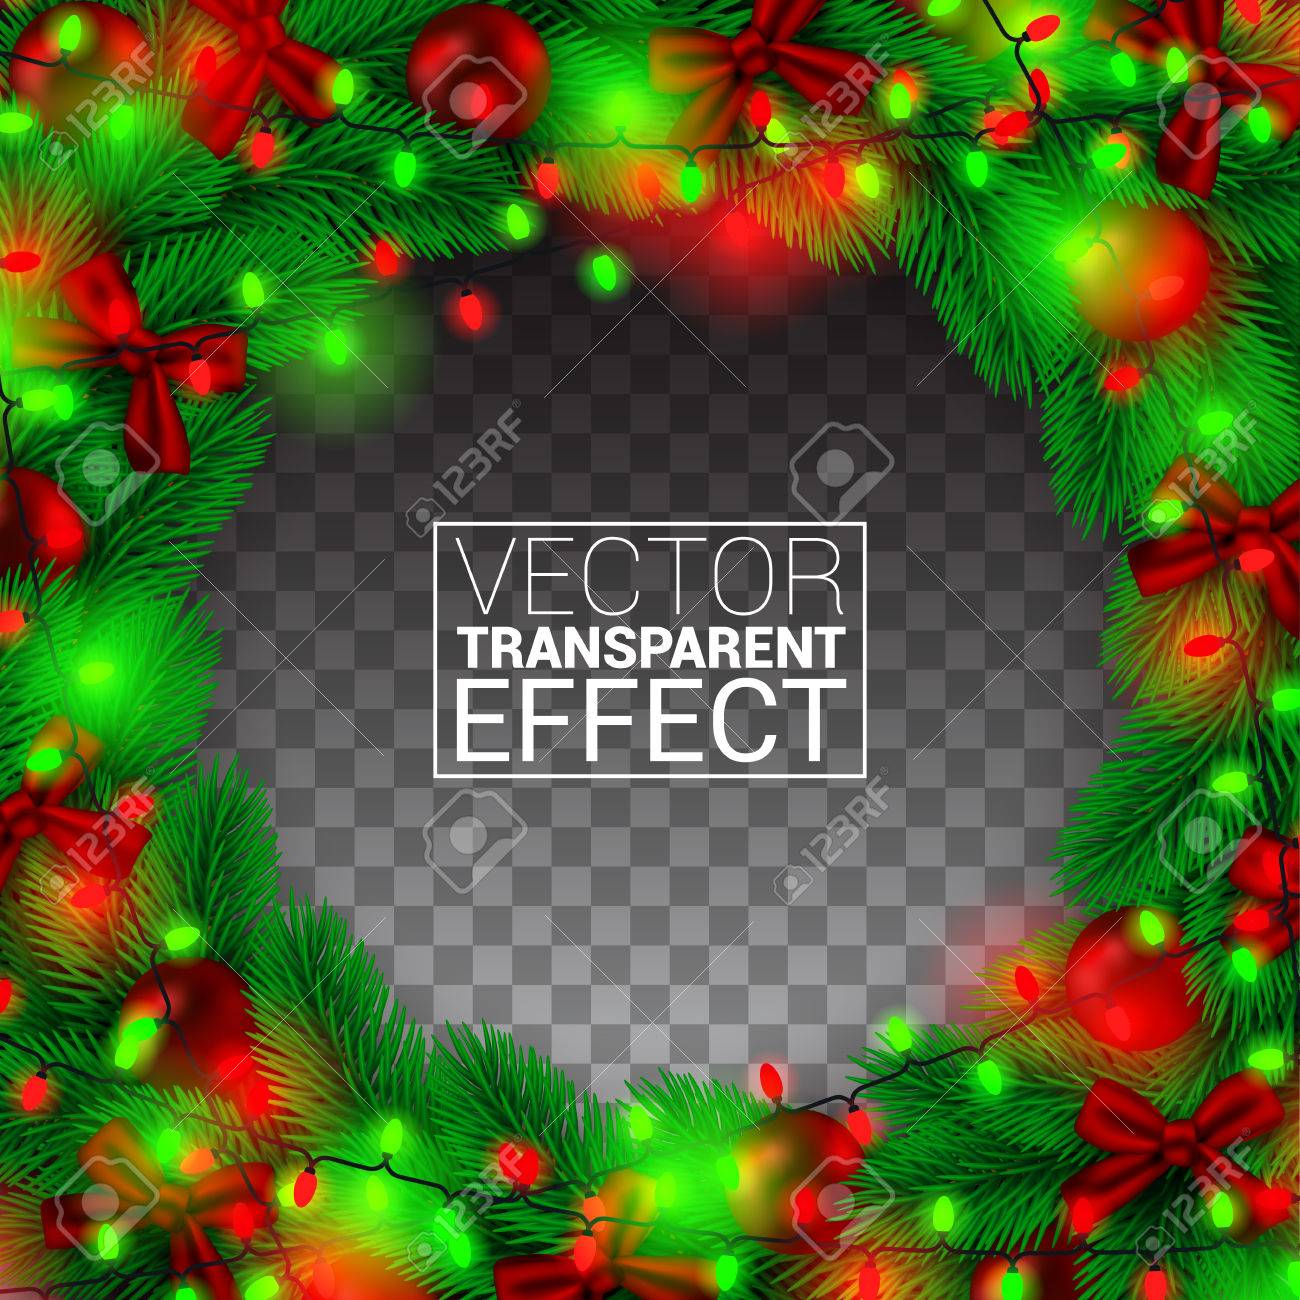 Realistic Christmas Border, Isolated on transparency Background